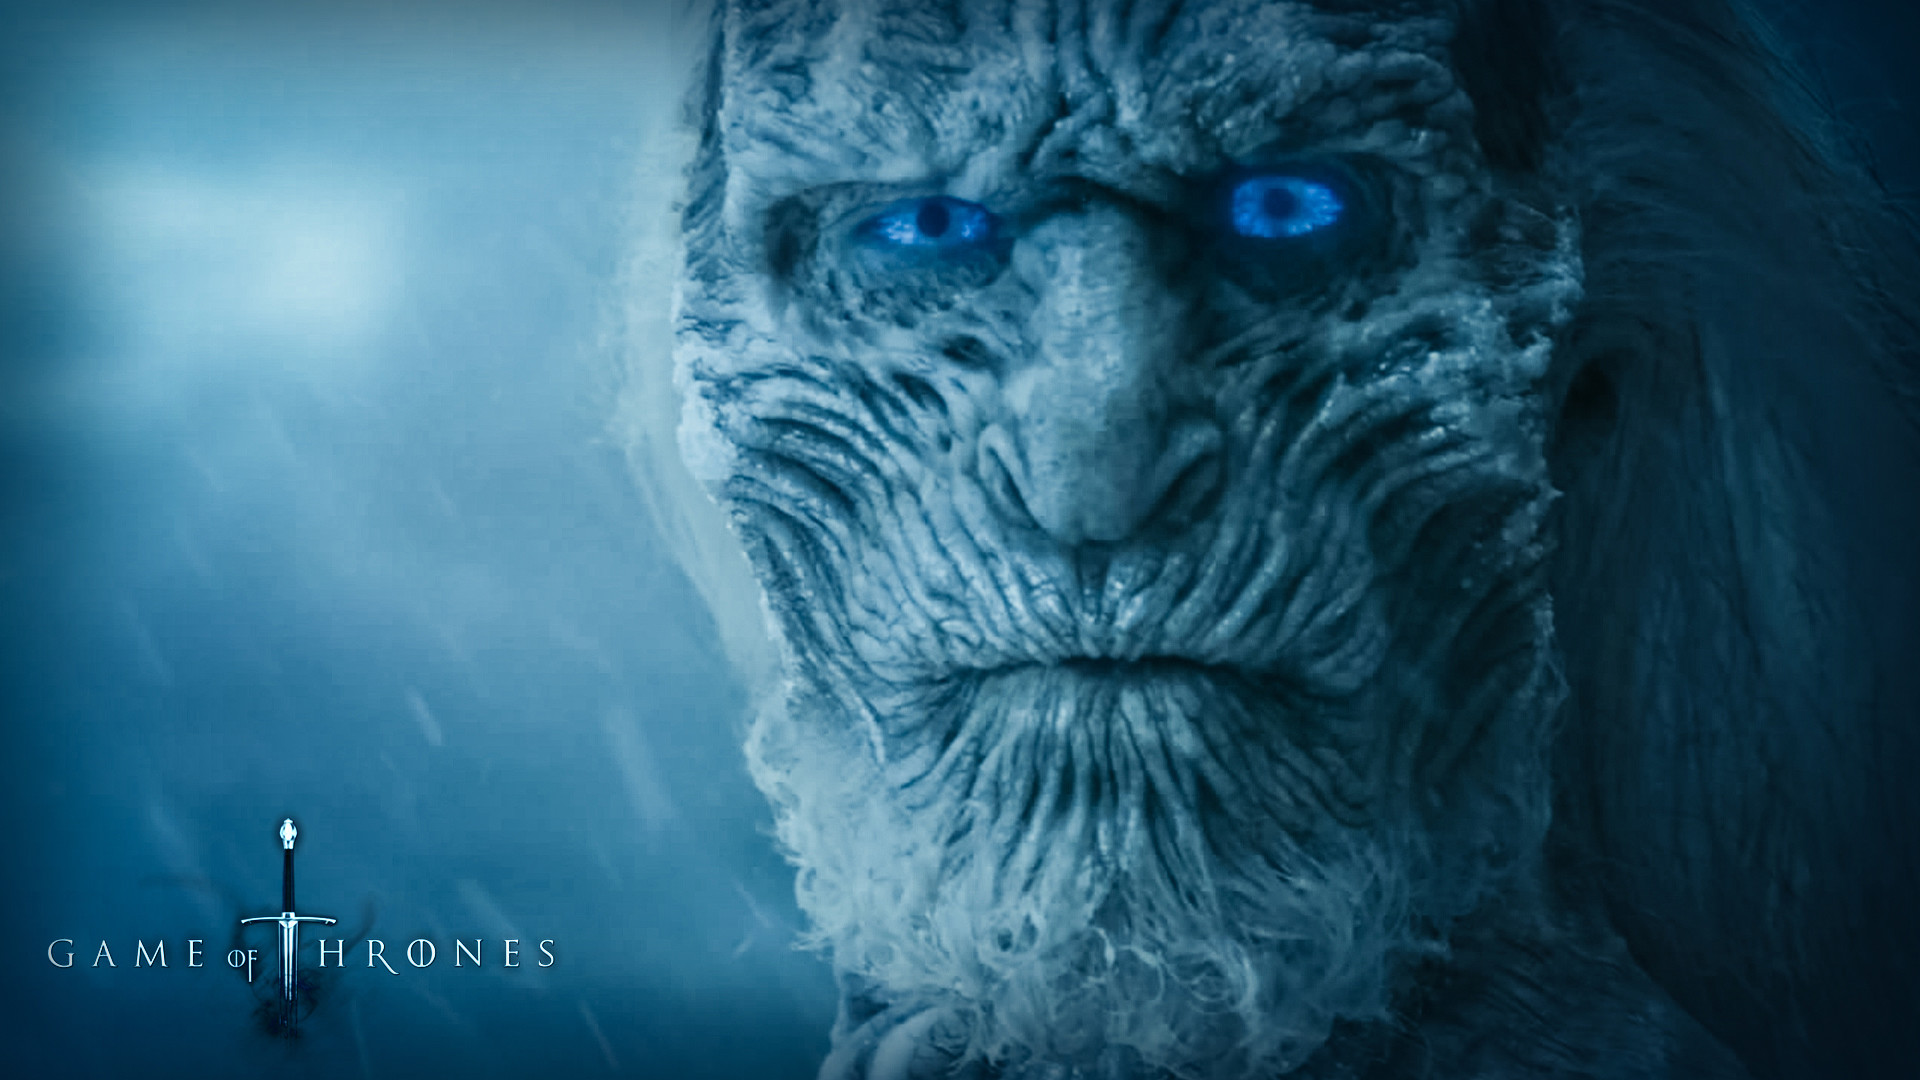 Game of Thrones Season 4 – Wallpaper, High Definition, High Quality .